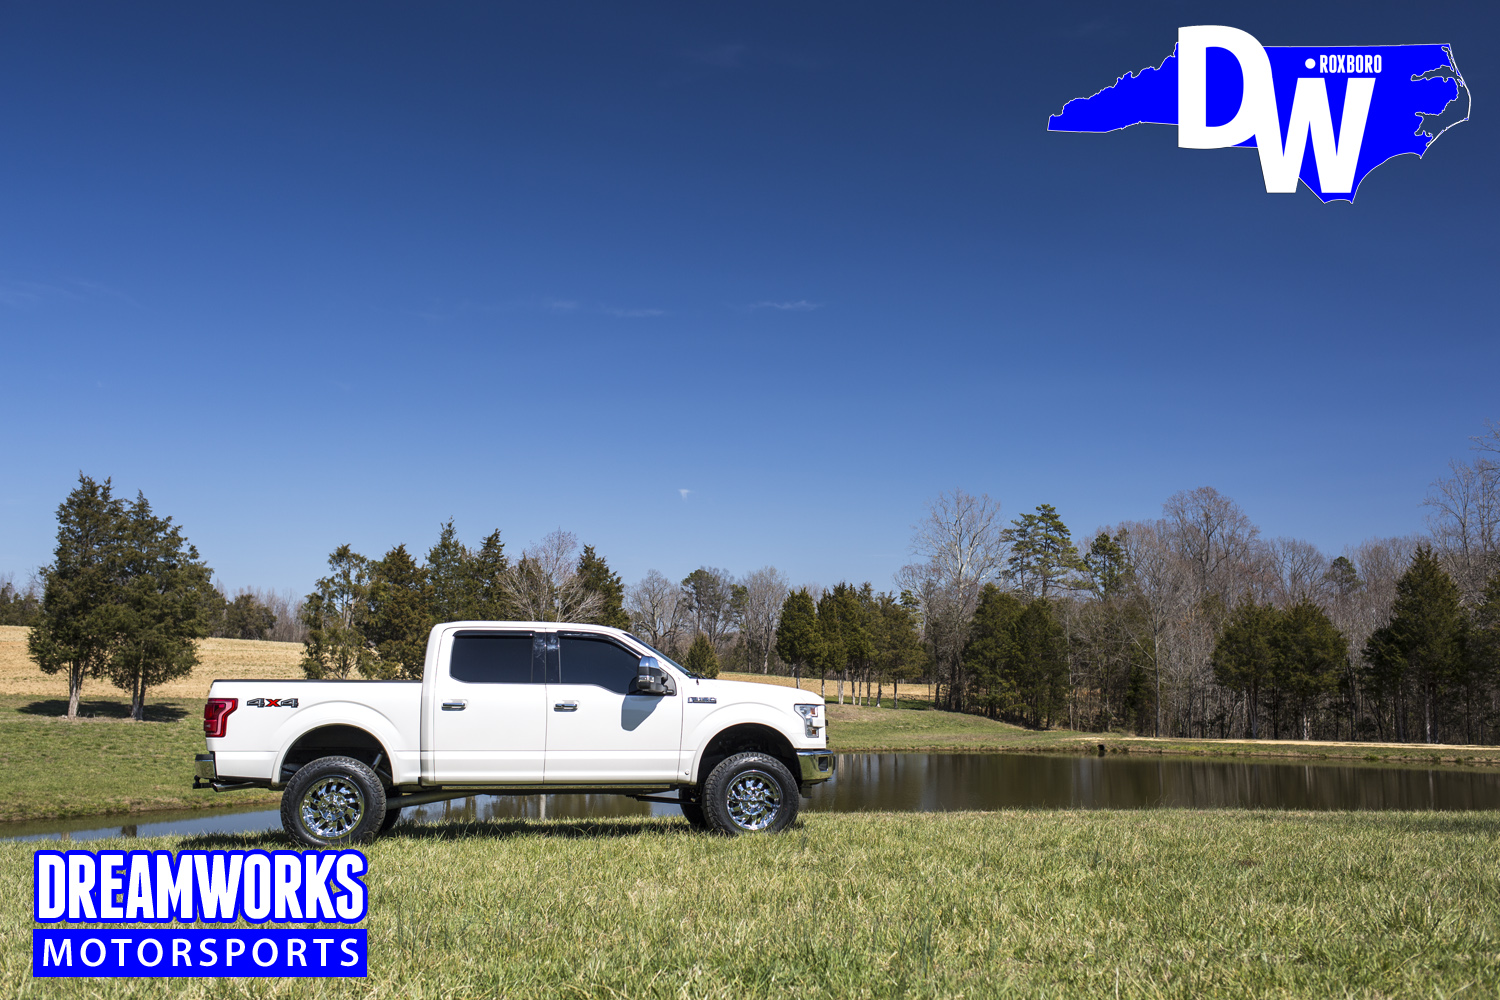 Ford_F150_By_Deamworks_Motorsports-2.jpg